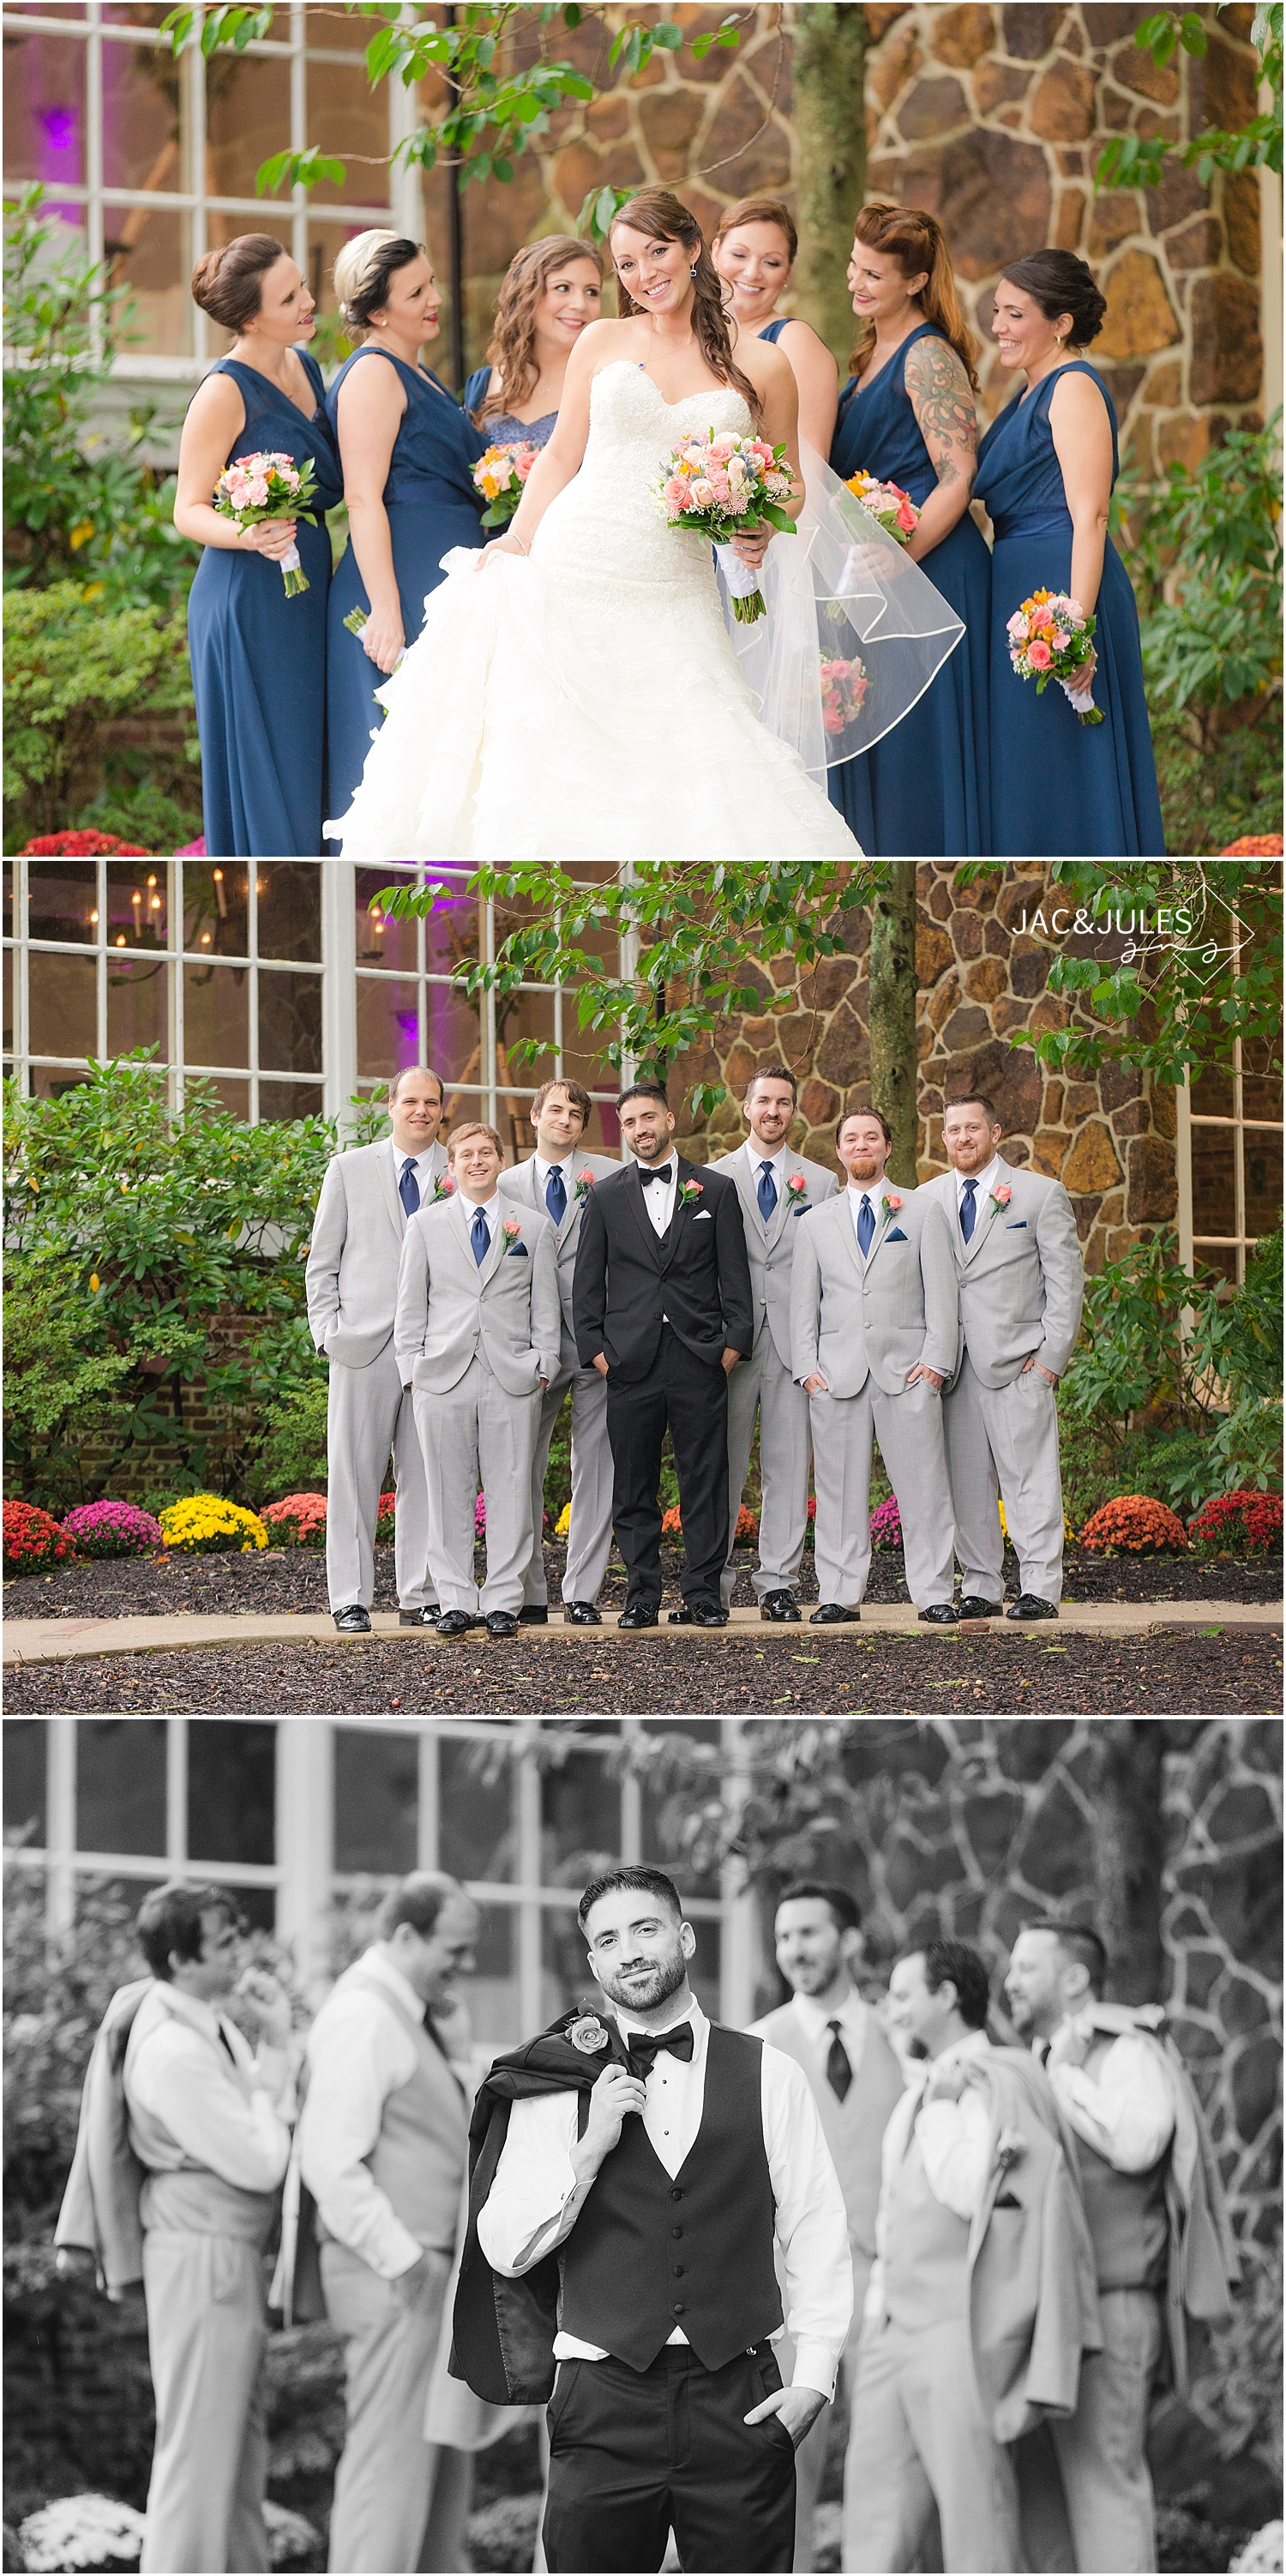 jacnjules photograph a wedding in Smithville, NJ